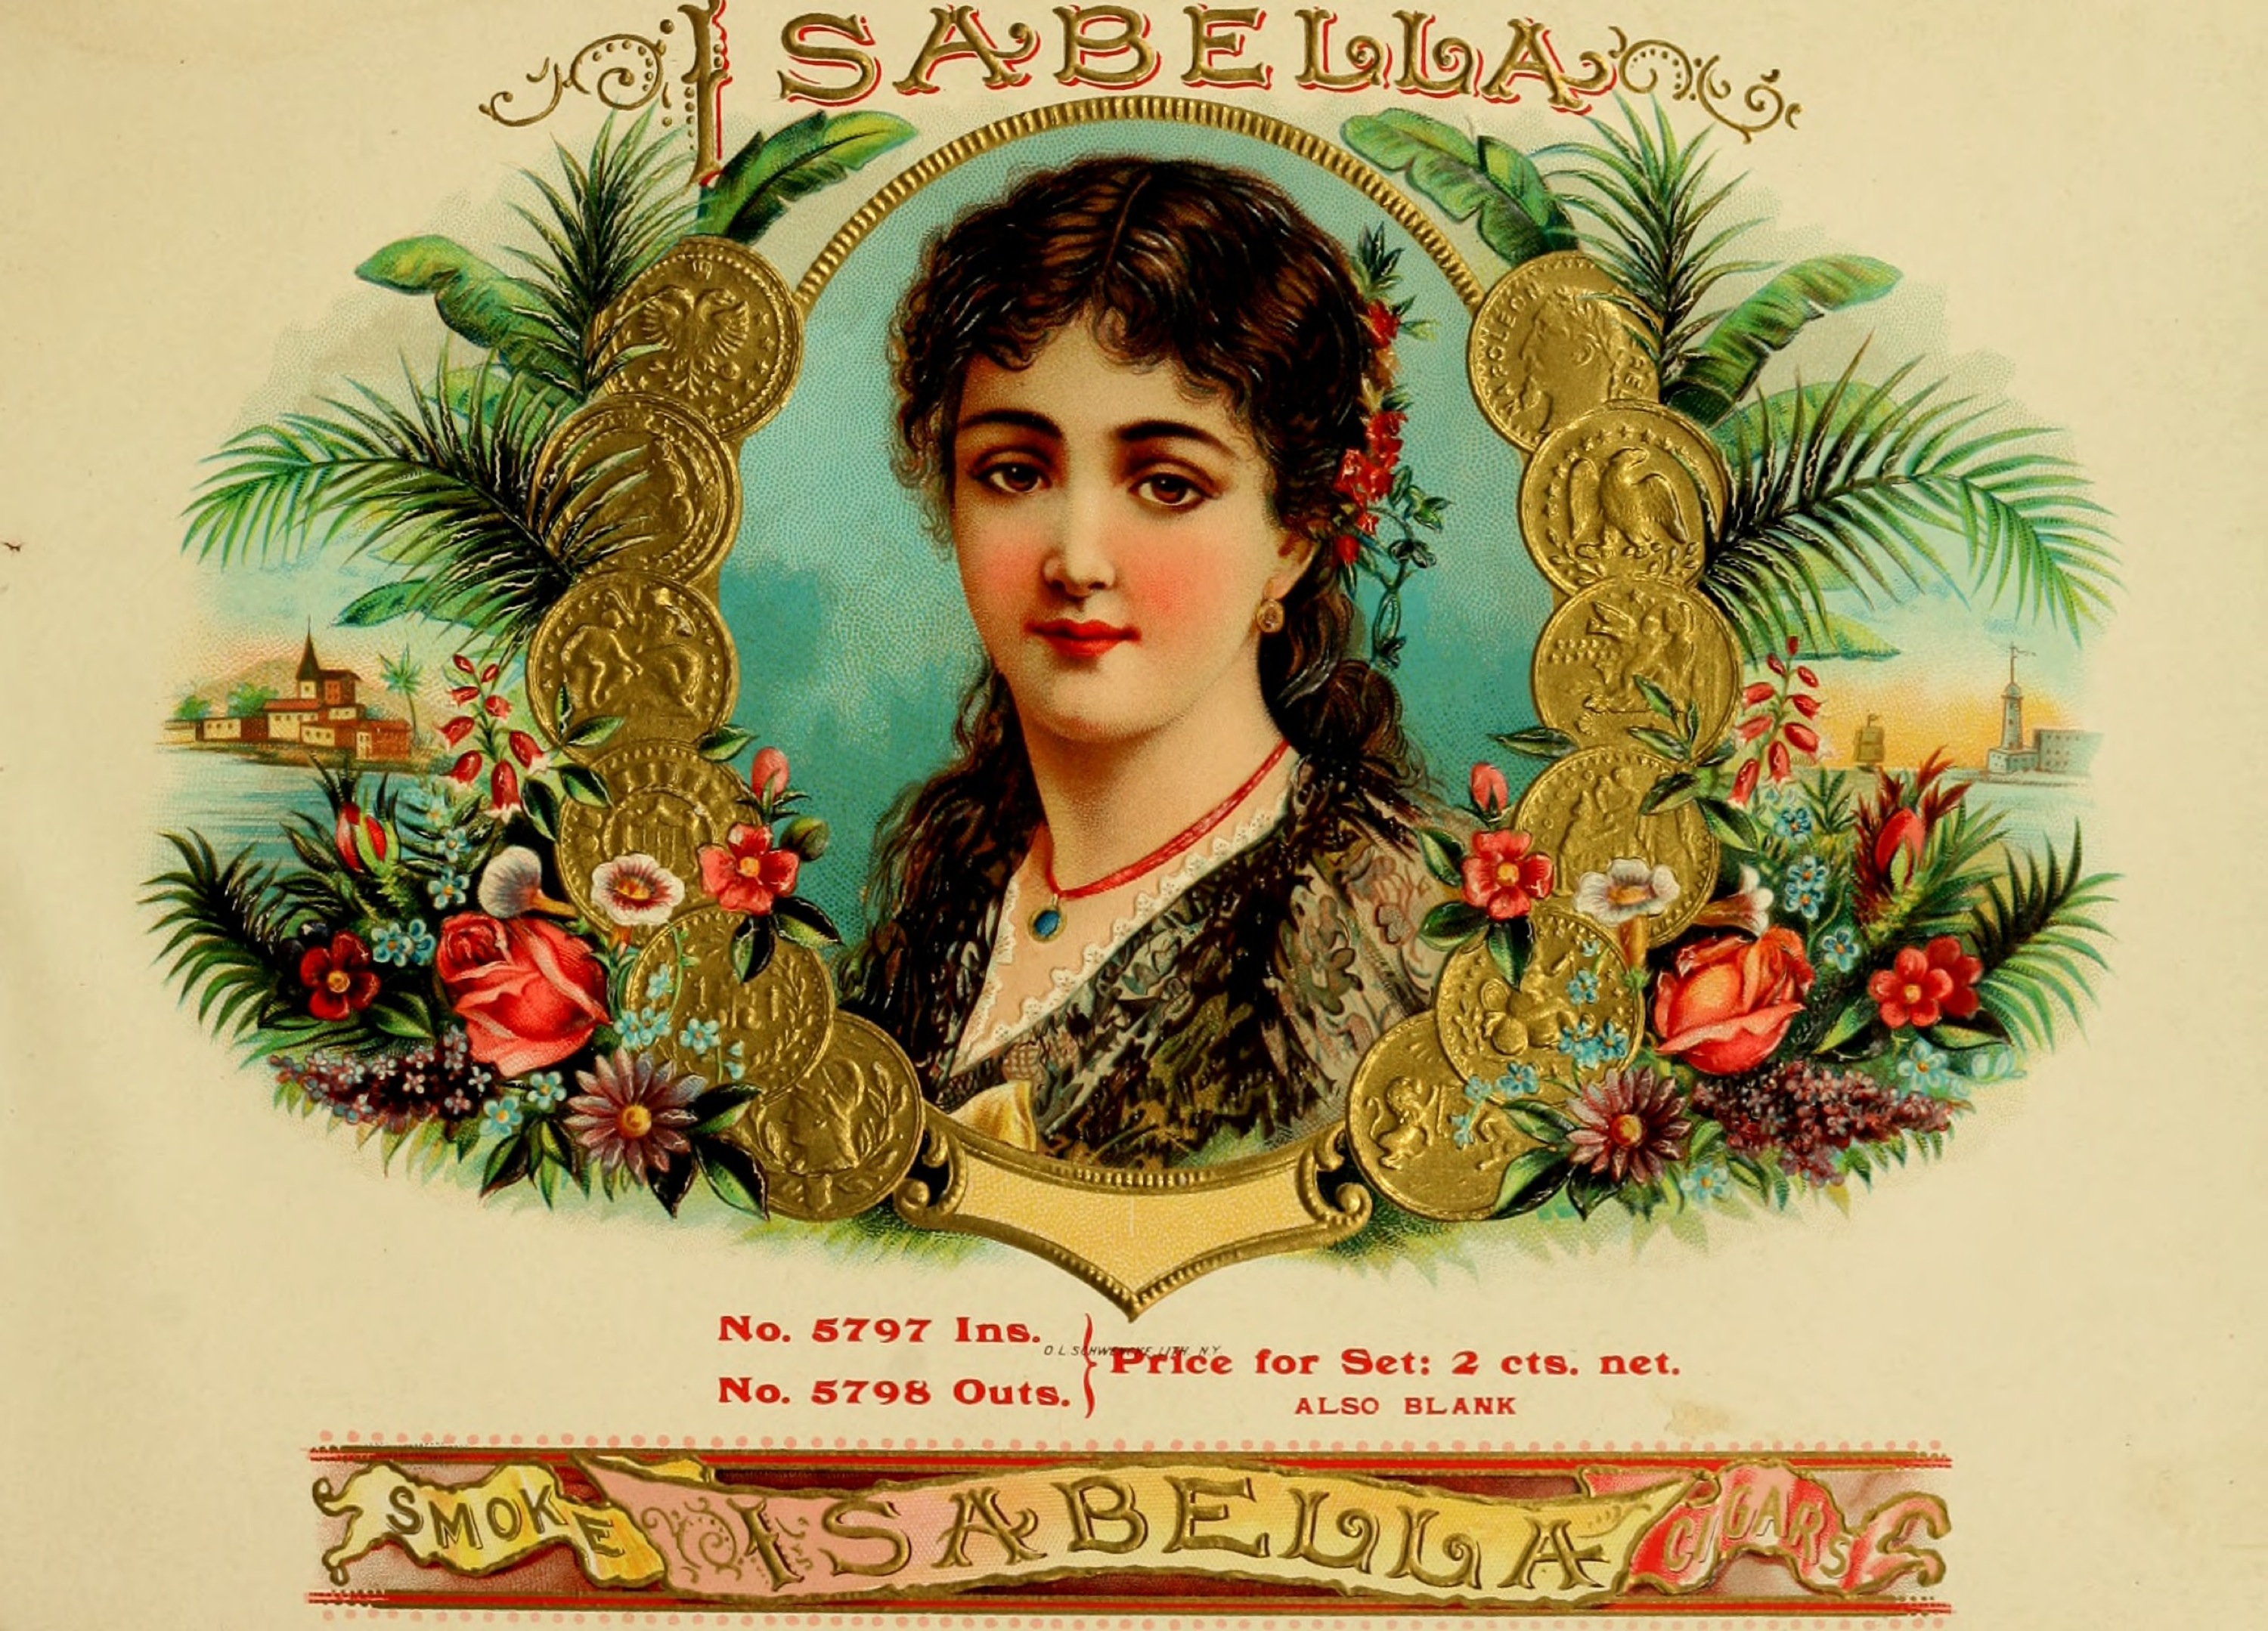 isabella_cigar-vintage-cigar-box-labels-cigarmonkeys_com_1.JPG